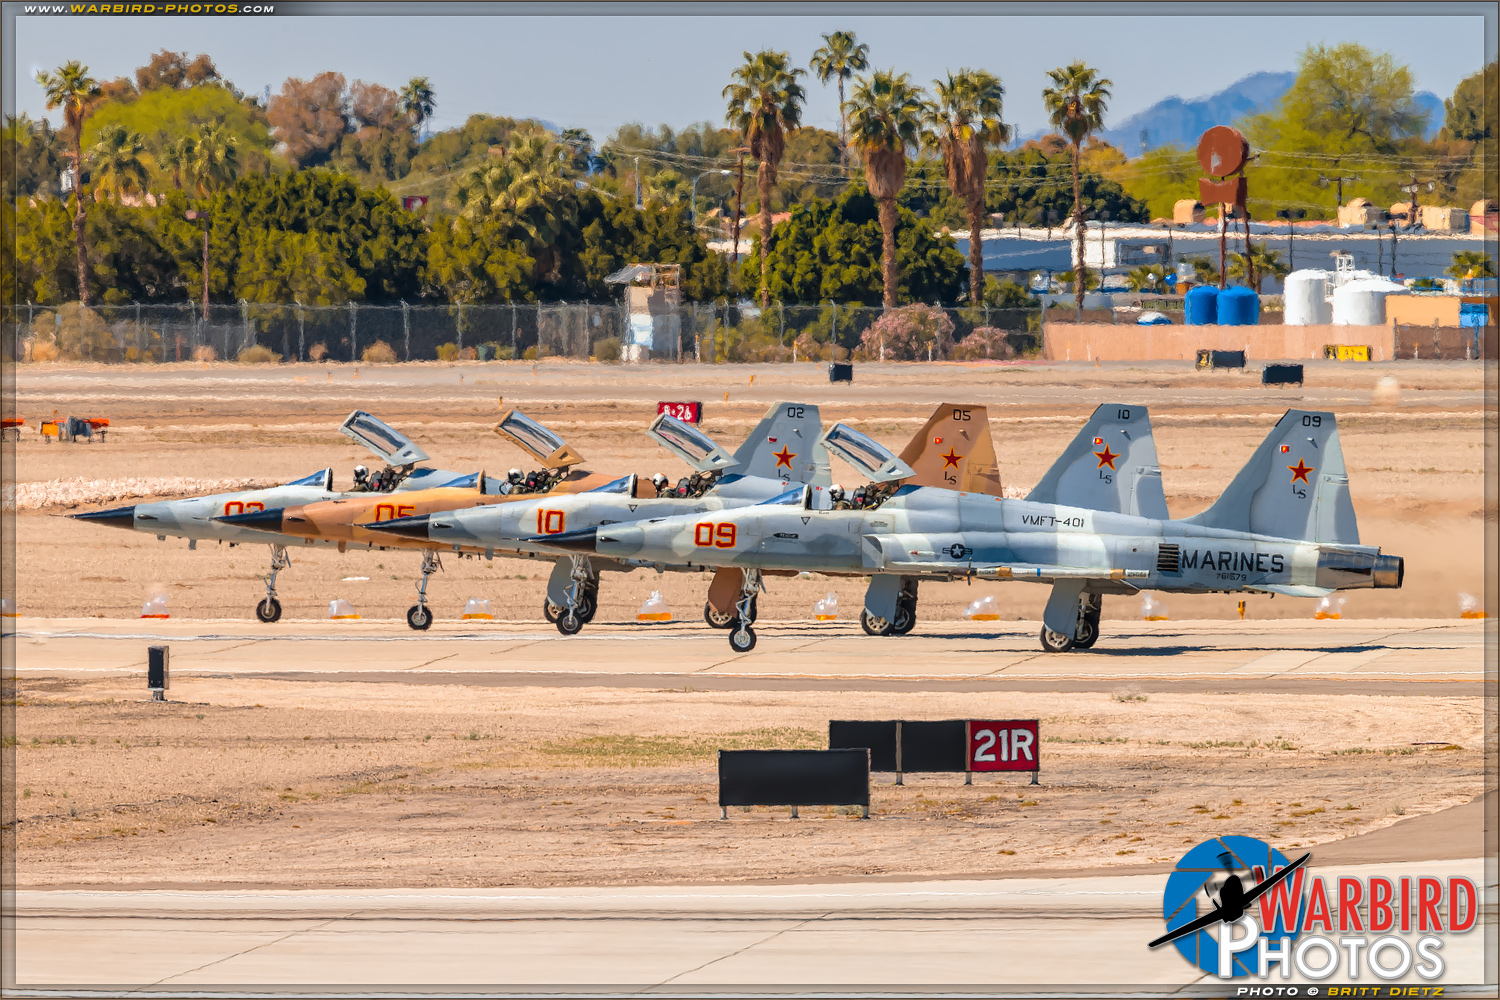 MCAS Yuma Airshow 2017 - March 18, 2017